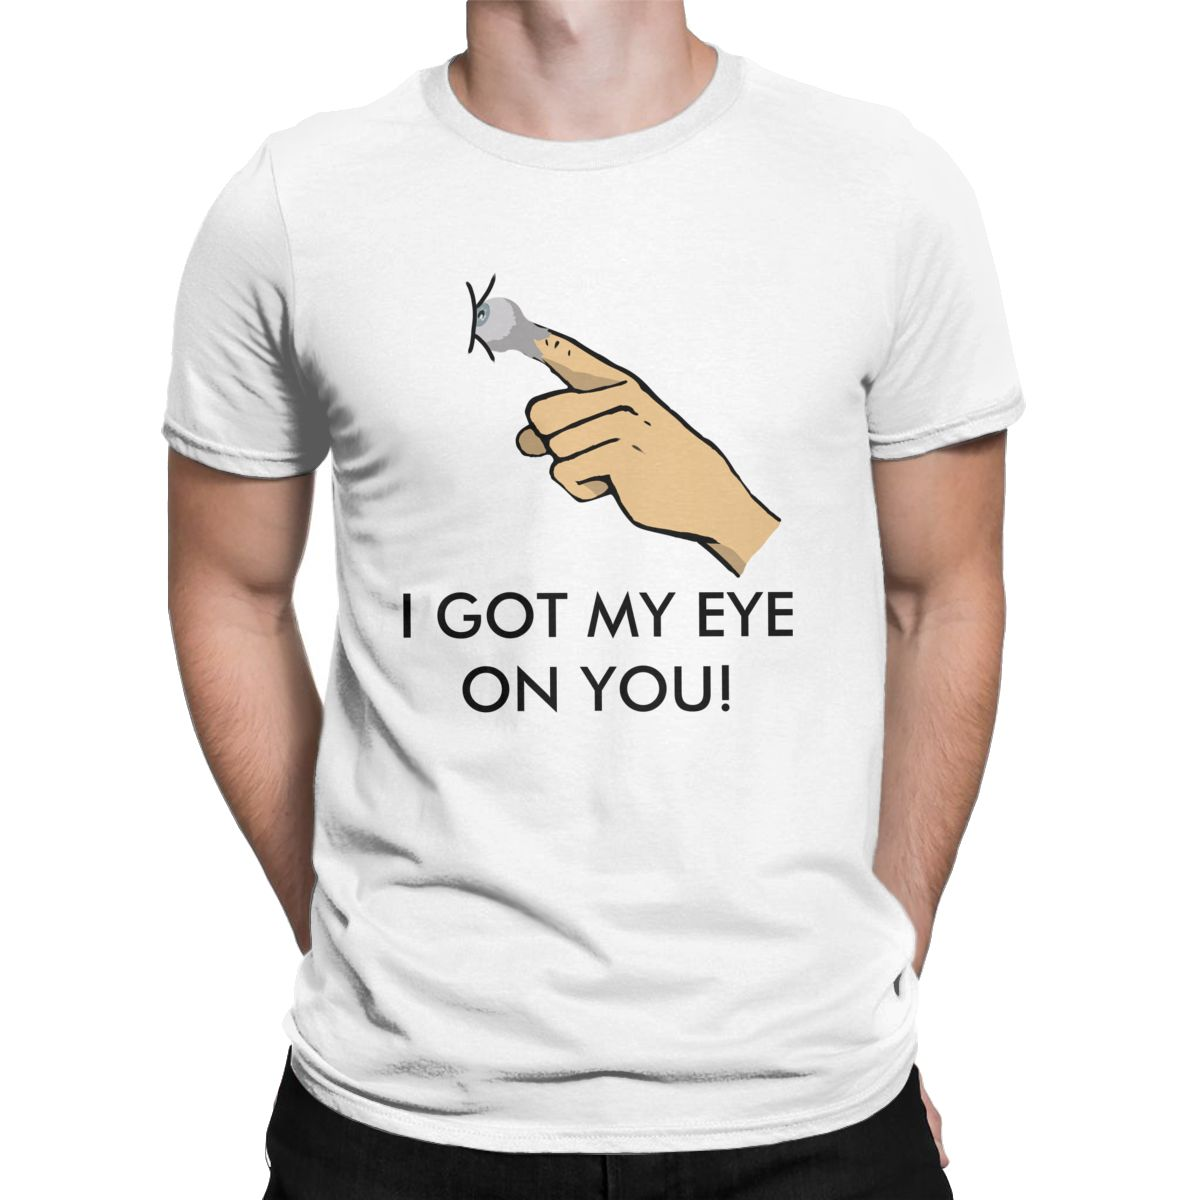 Men I Got My Eye On You T Shirts Funny <font><b>Suspicious</b></font> 100% Cotton Tops Novelty Short Sleeve Round Neck Tee Shirt 6XL T-Shirts image